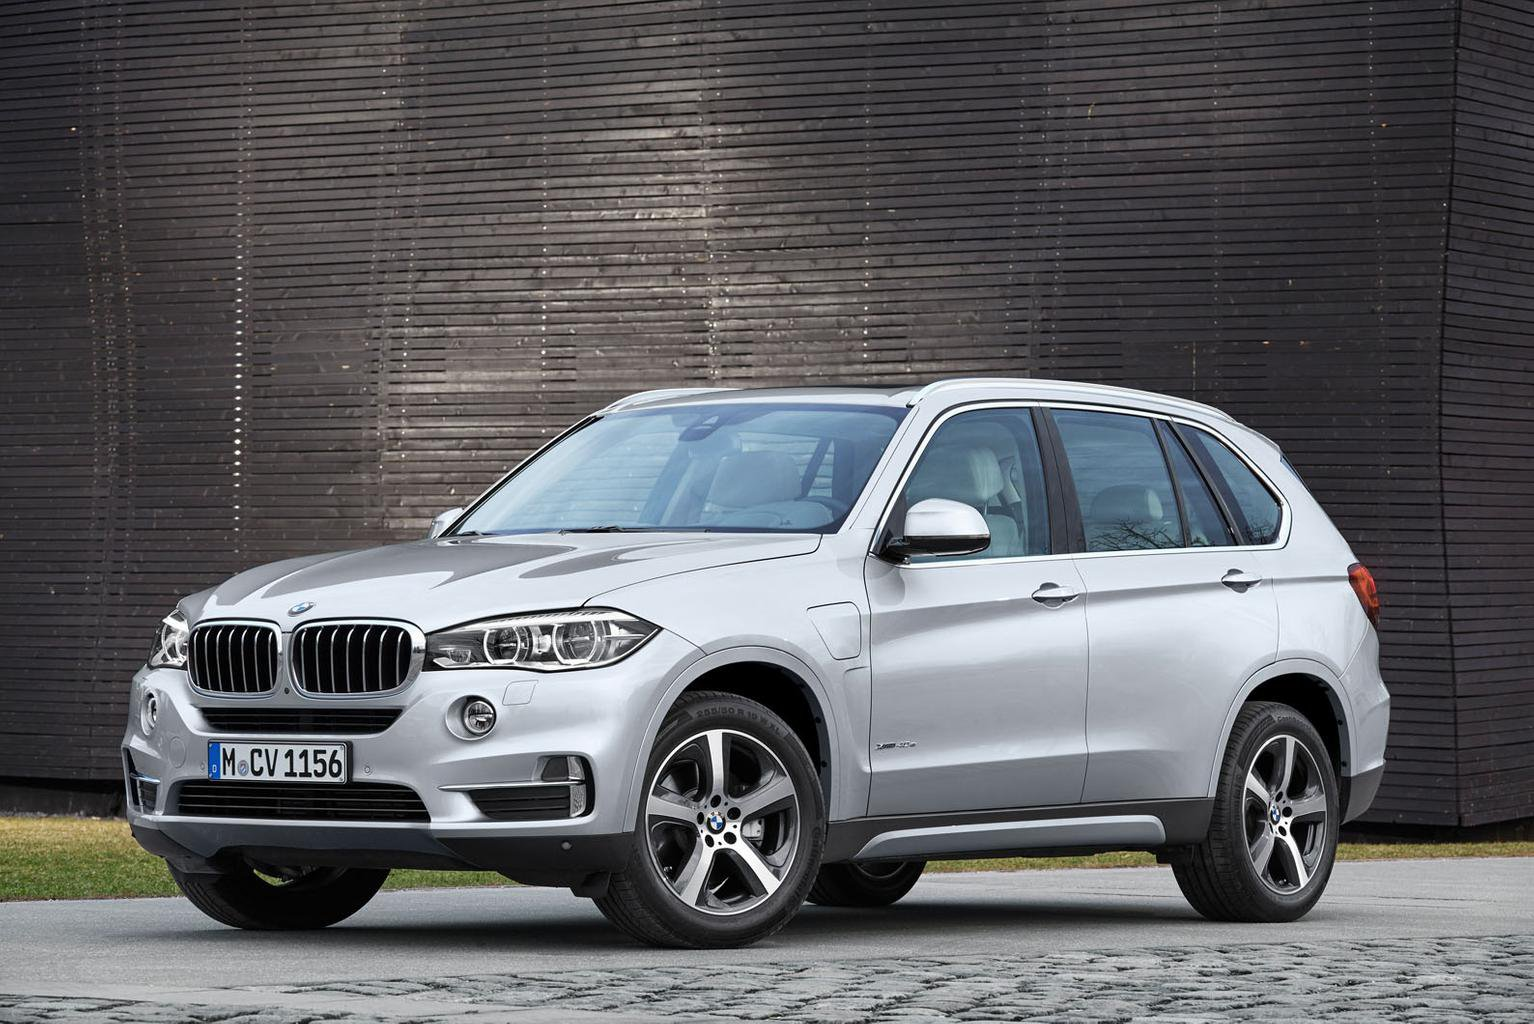 BMW reveals hybrid X5 ahead of April debut